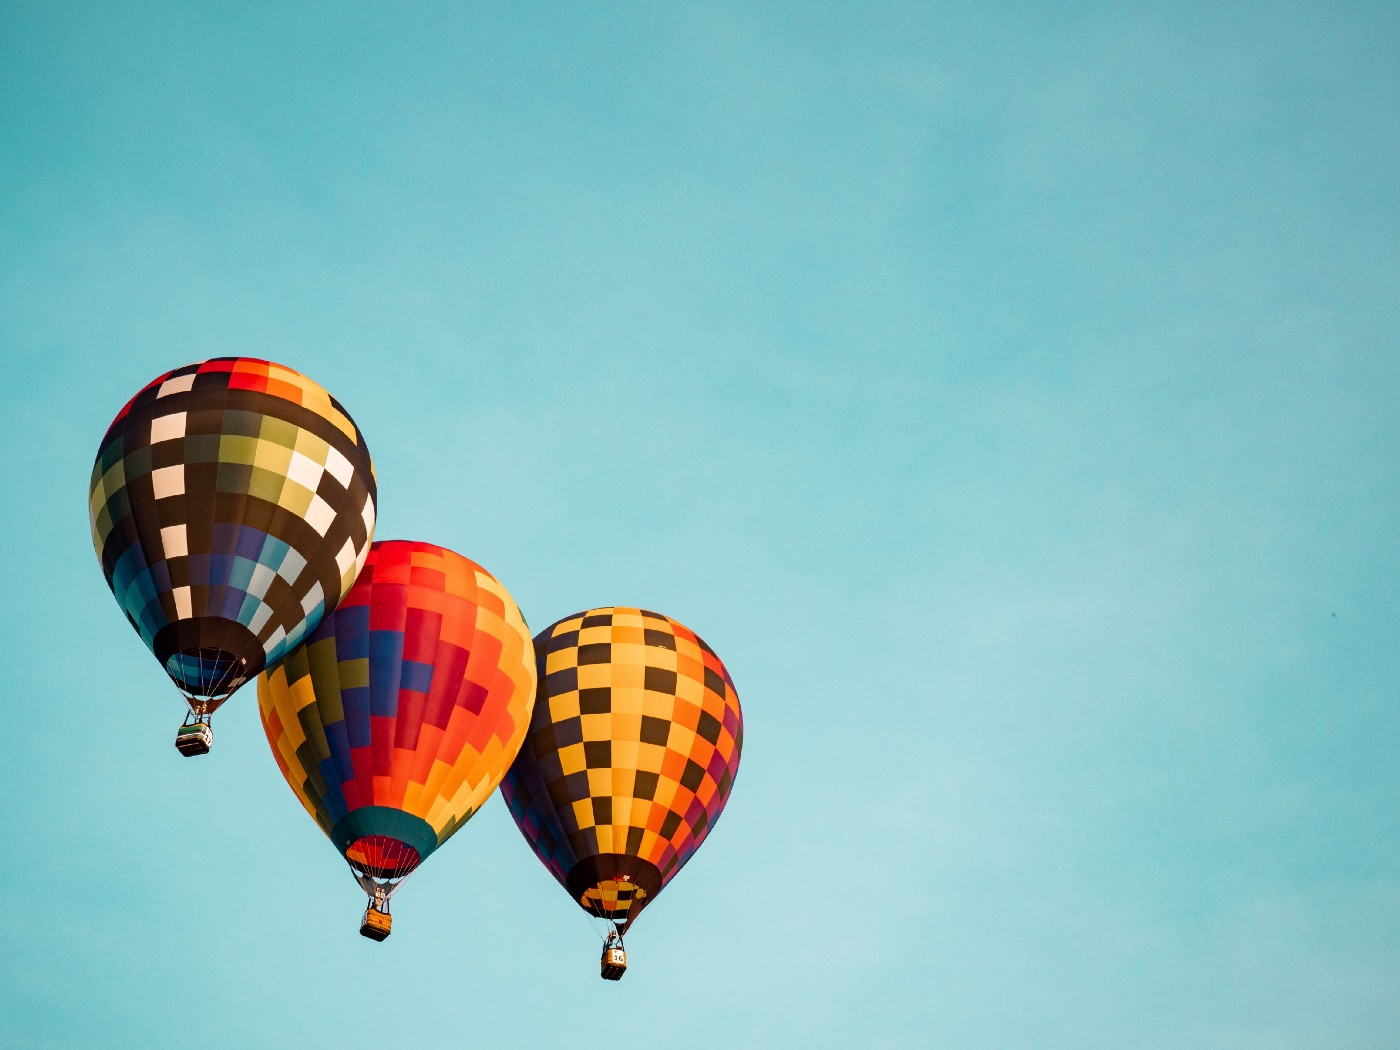 Three colorful hot air balloons floating against a blue sky